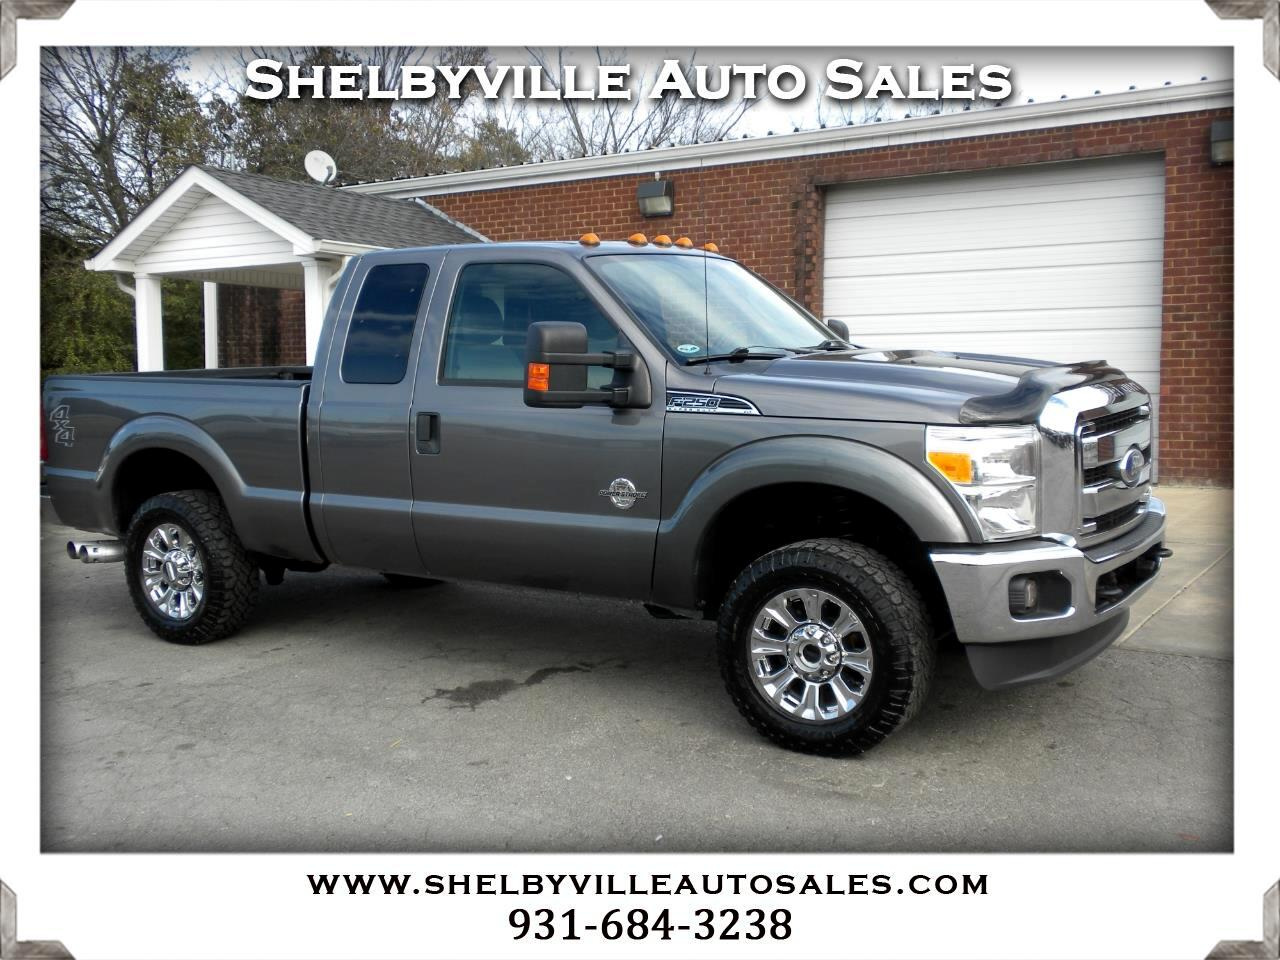 2012 Ford Super Duty F-250 SRW 4X4 SuperCab XLT